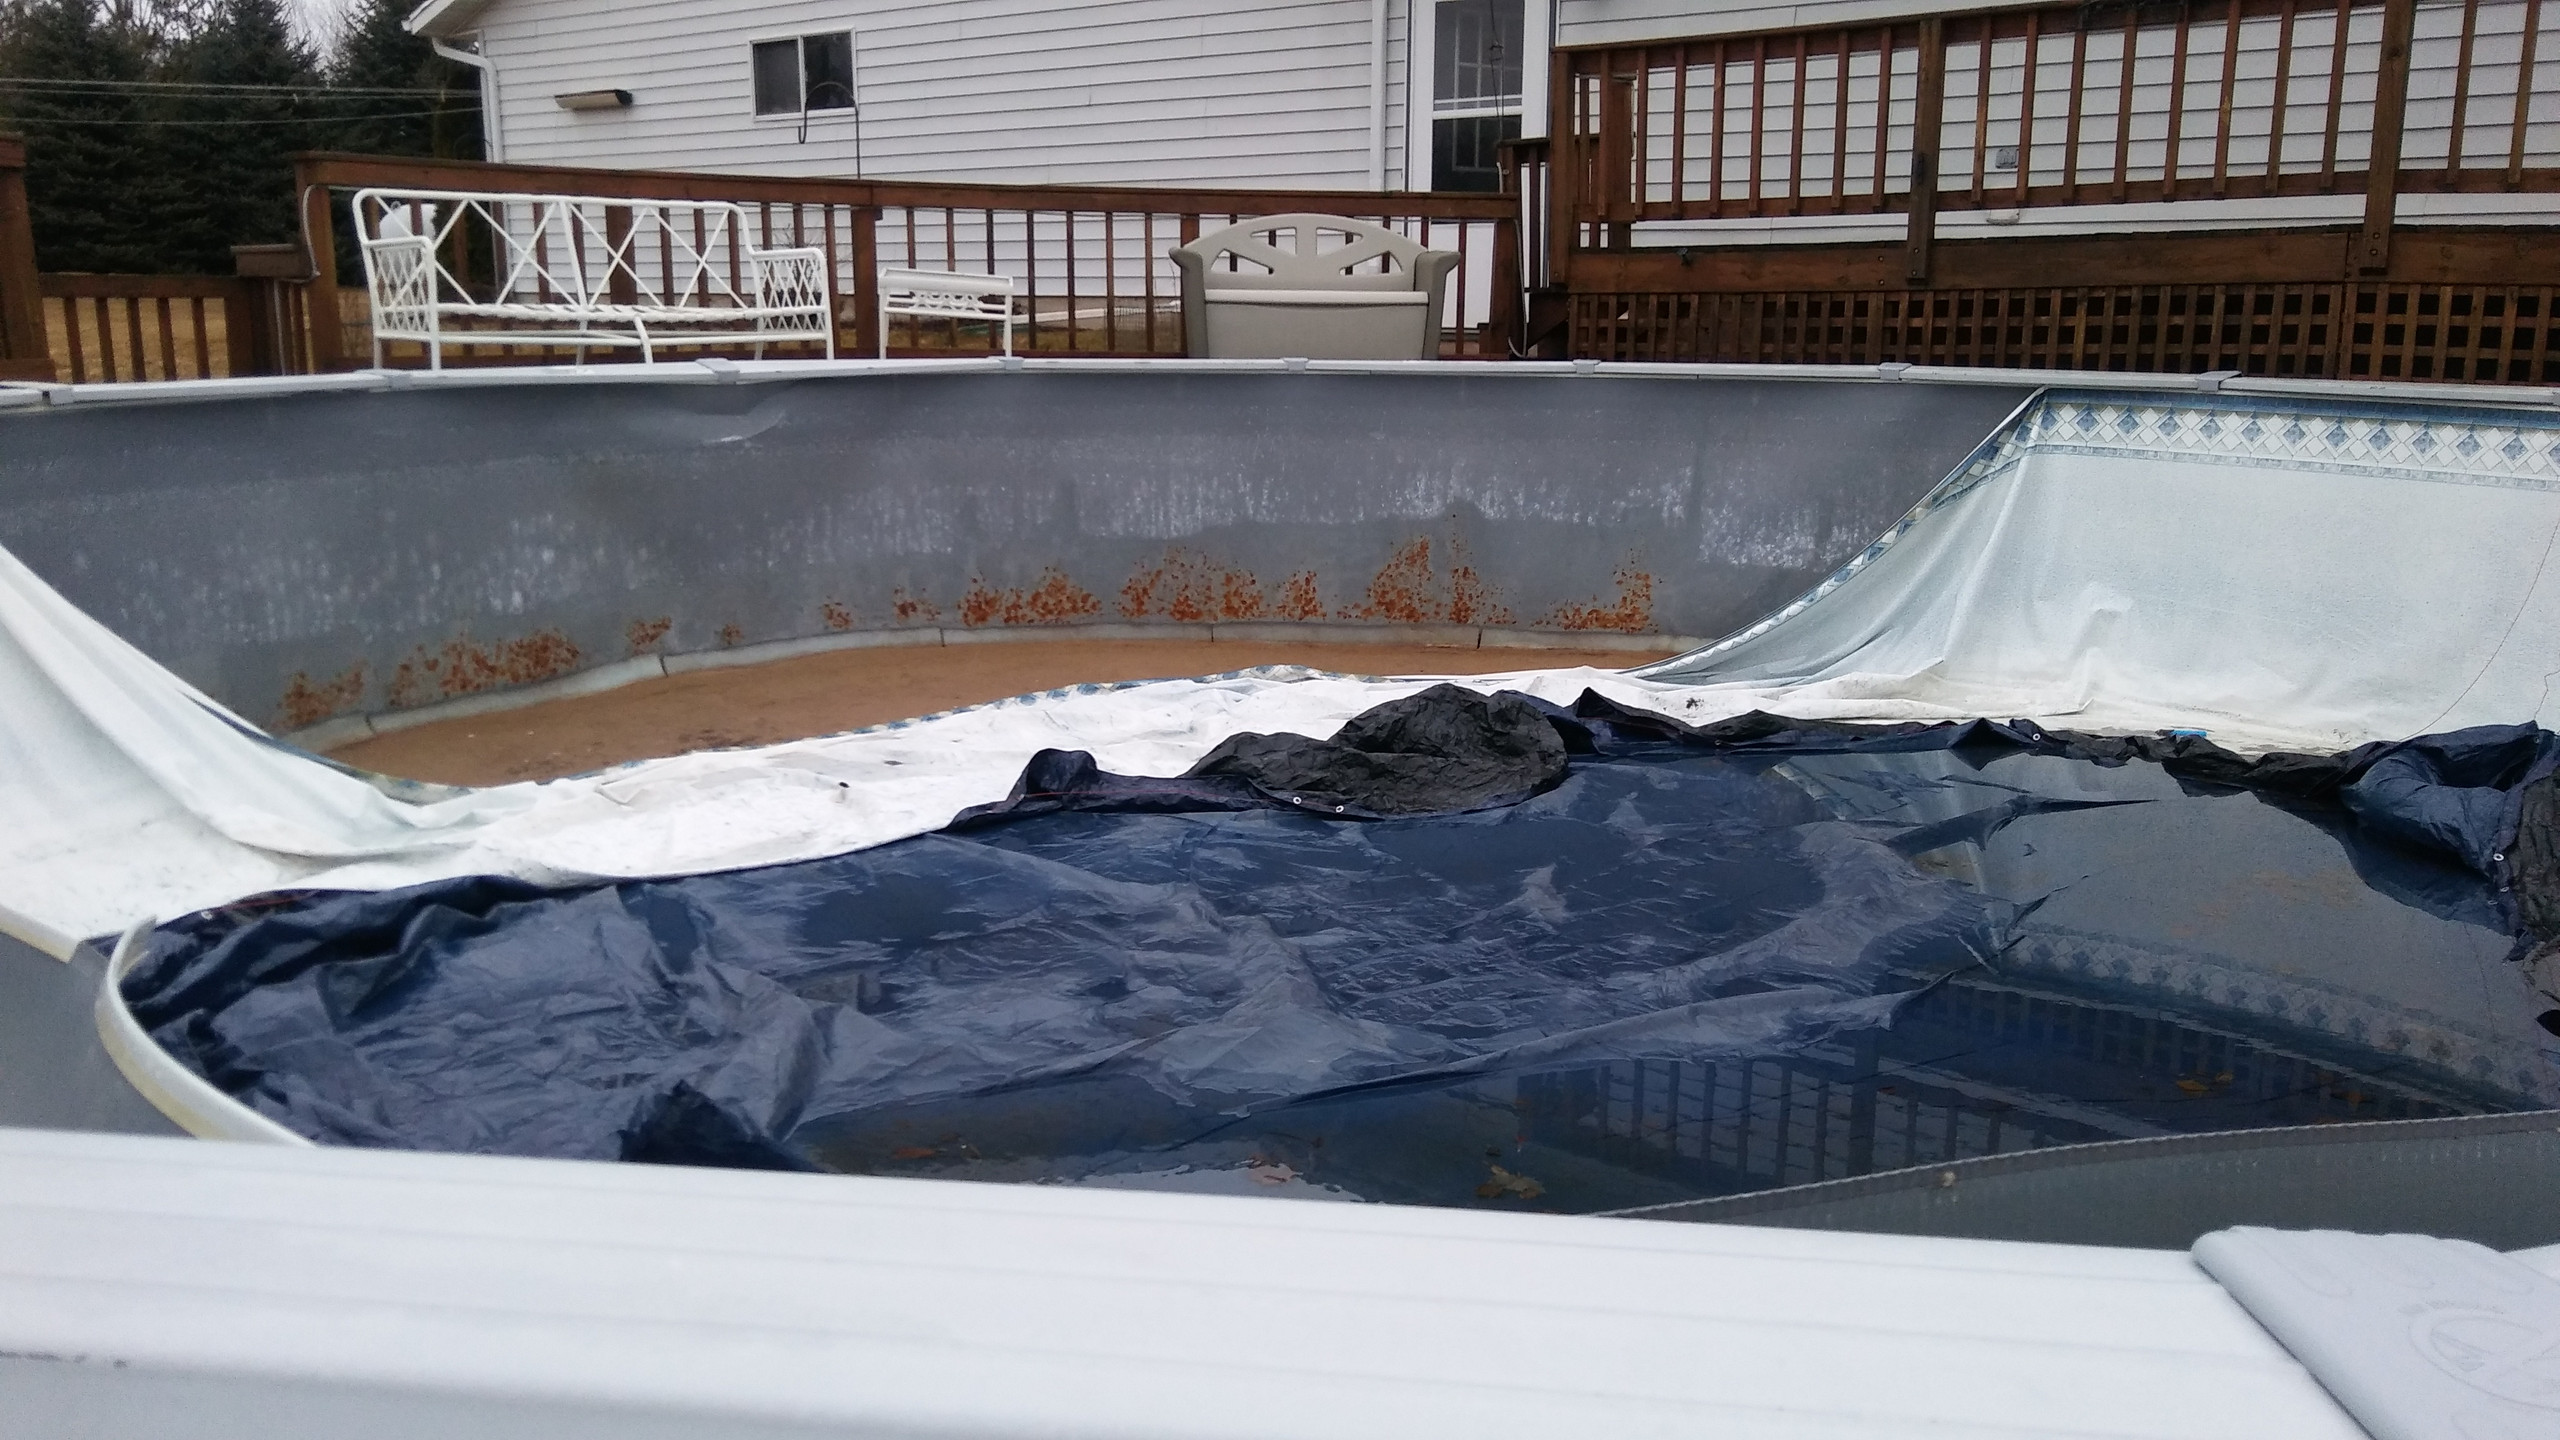 This above ground pool was damaged by patio blocks used during the installation process.